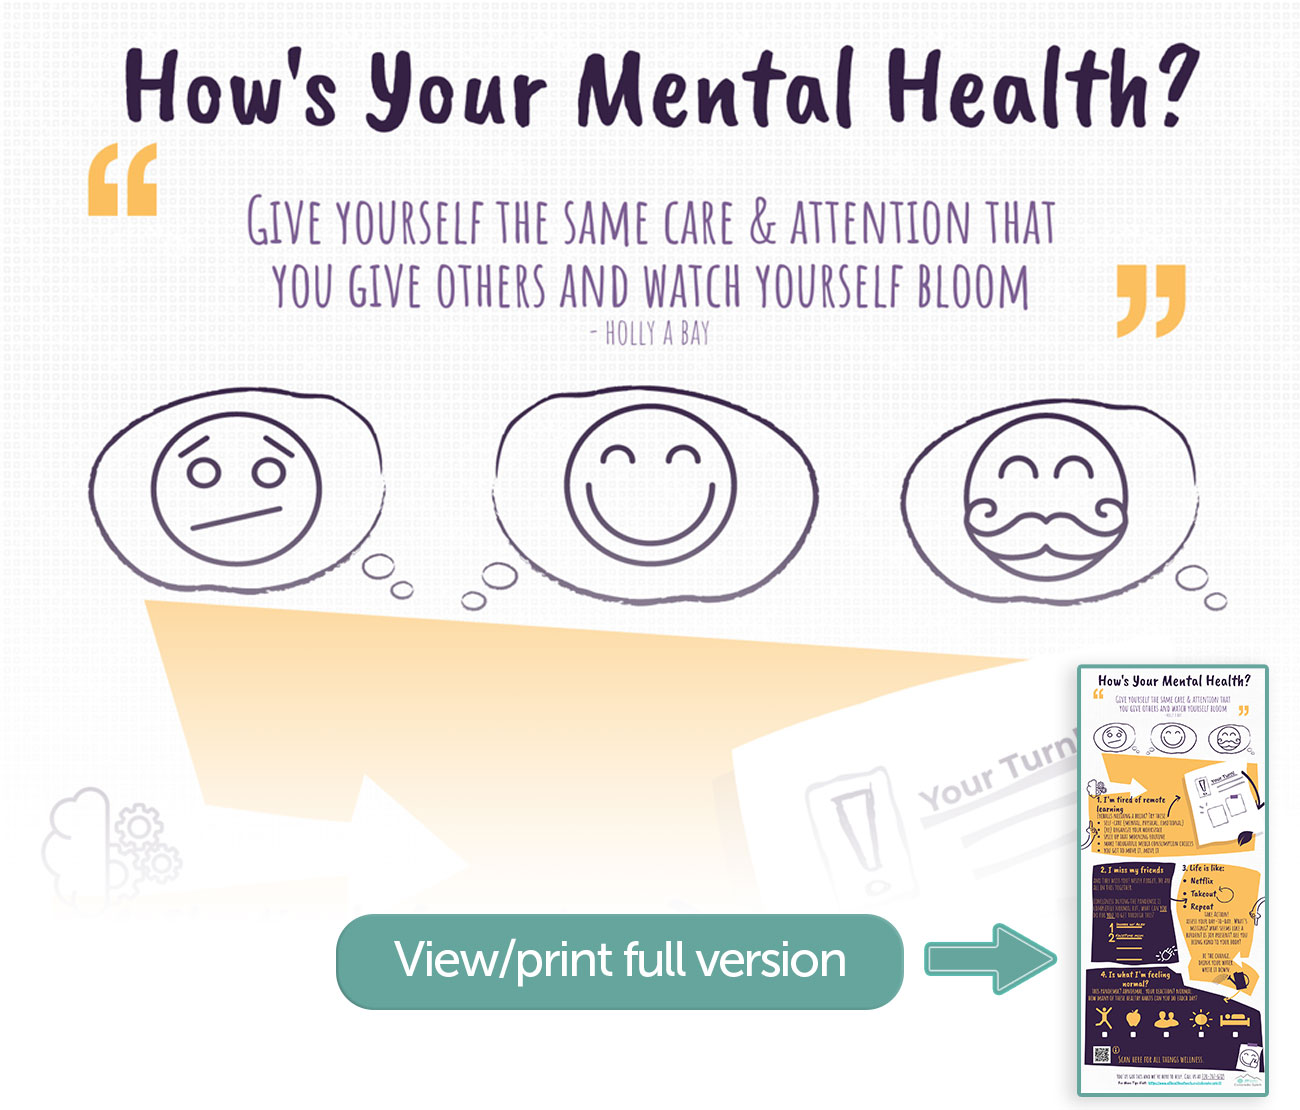 hows-your-mental-health-infographic